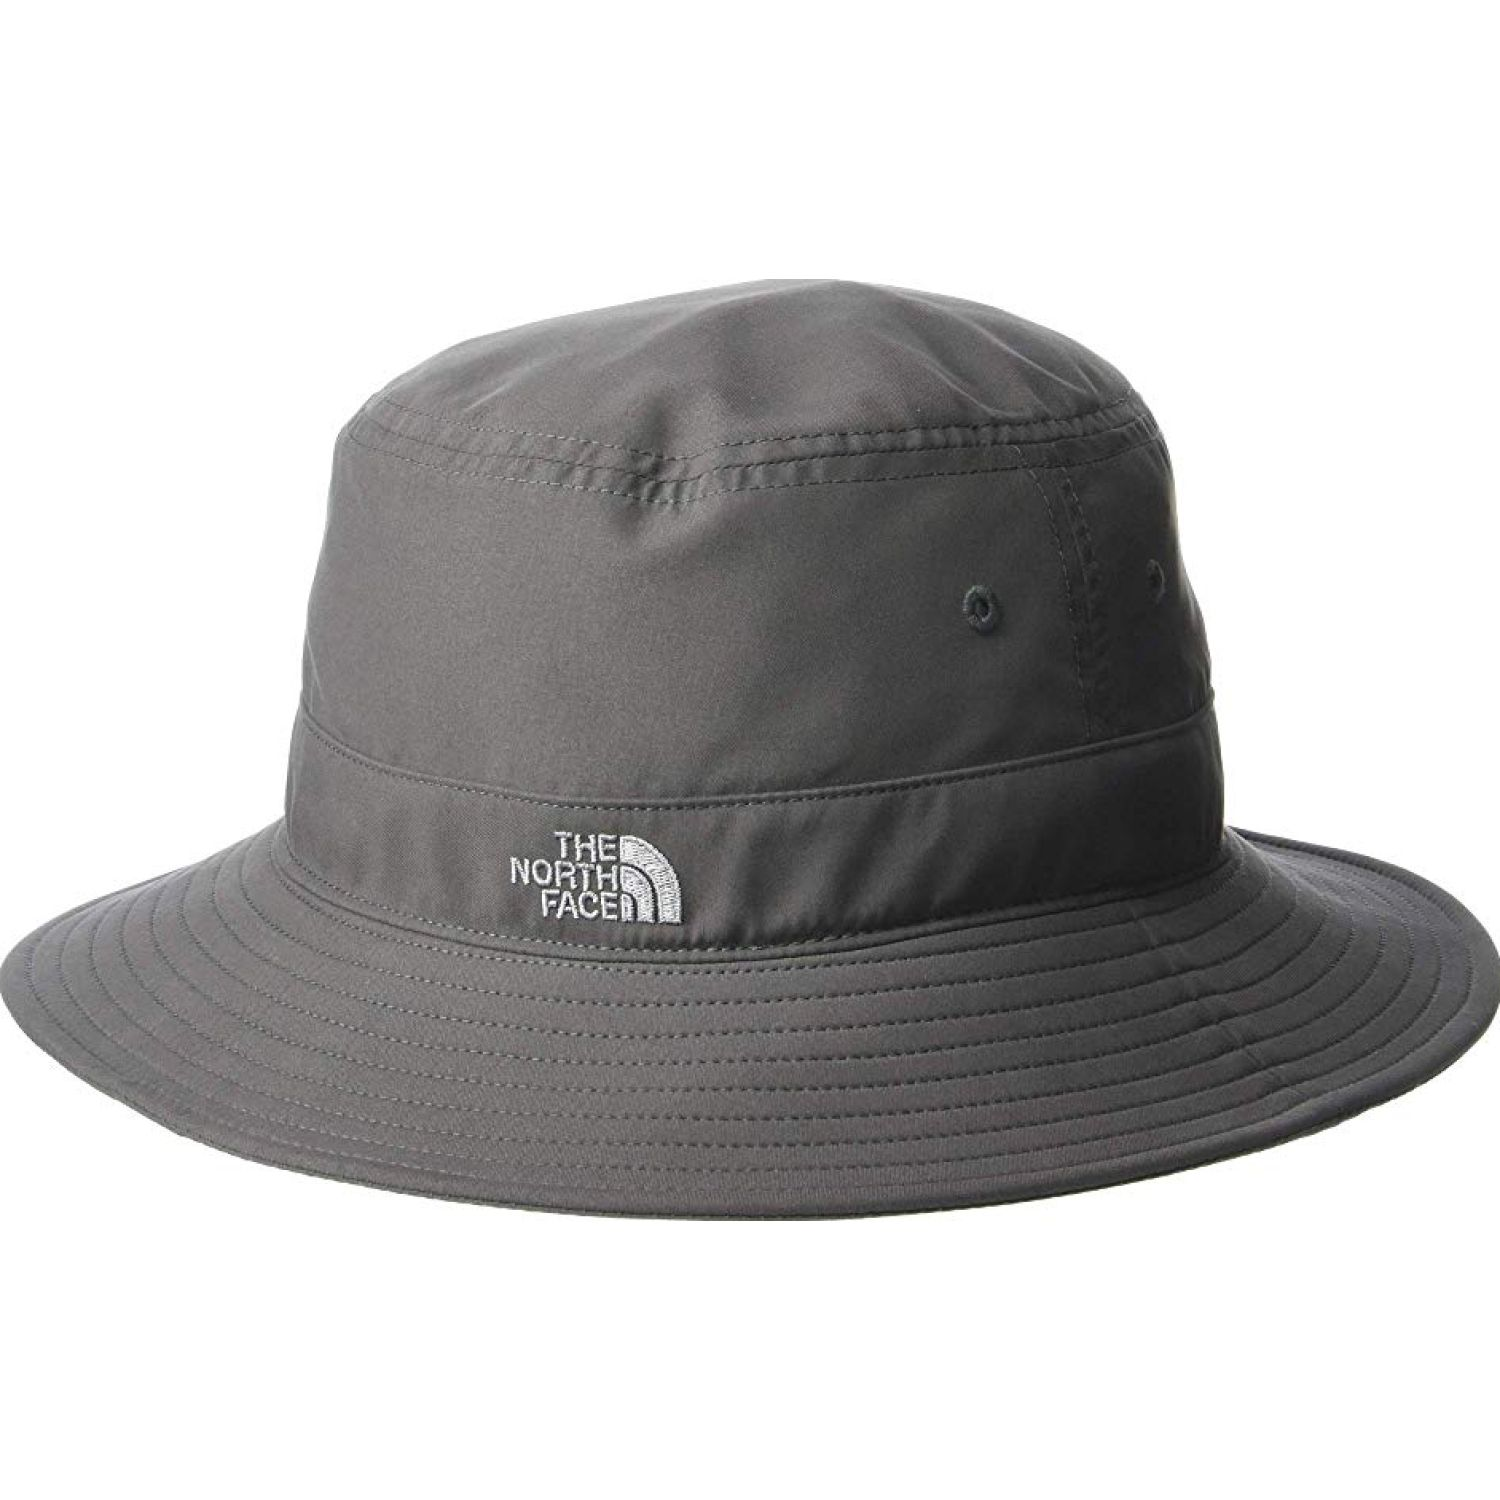 The North Face YOUTH CLASS V BRIMMER Gris Sombreros y Gorros